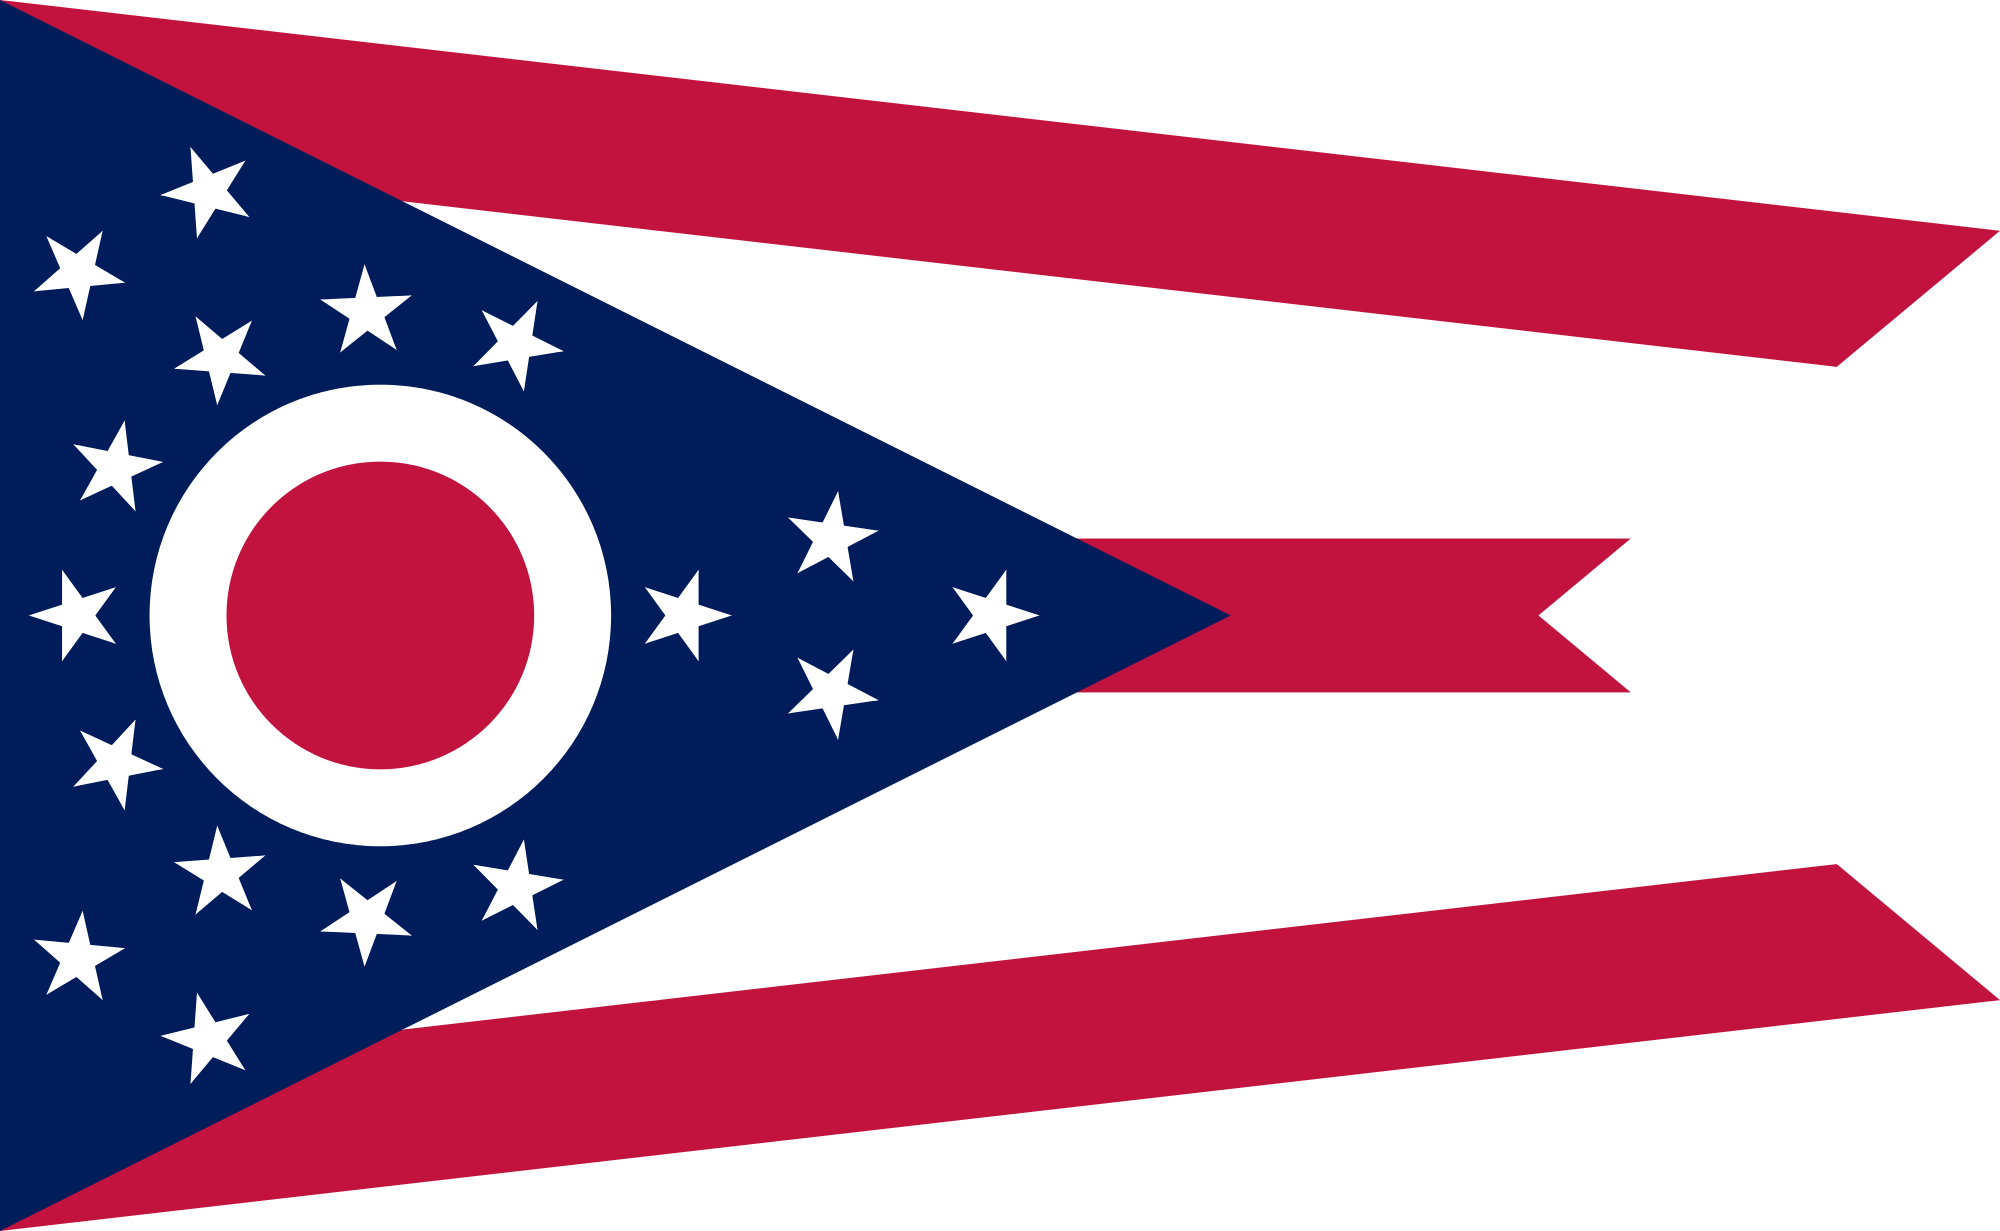 Hurricane flag png. Image of ohio vexillology